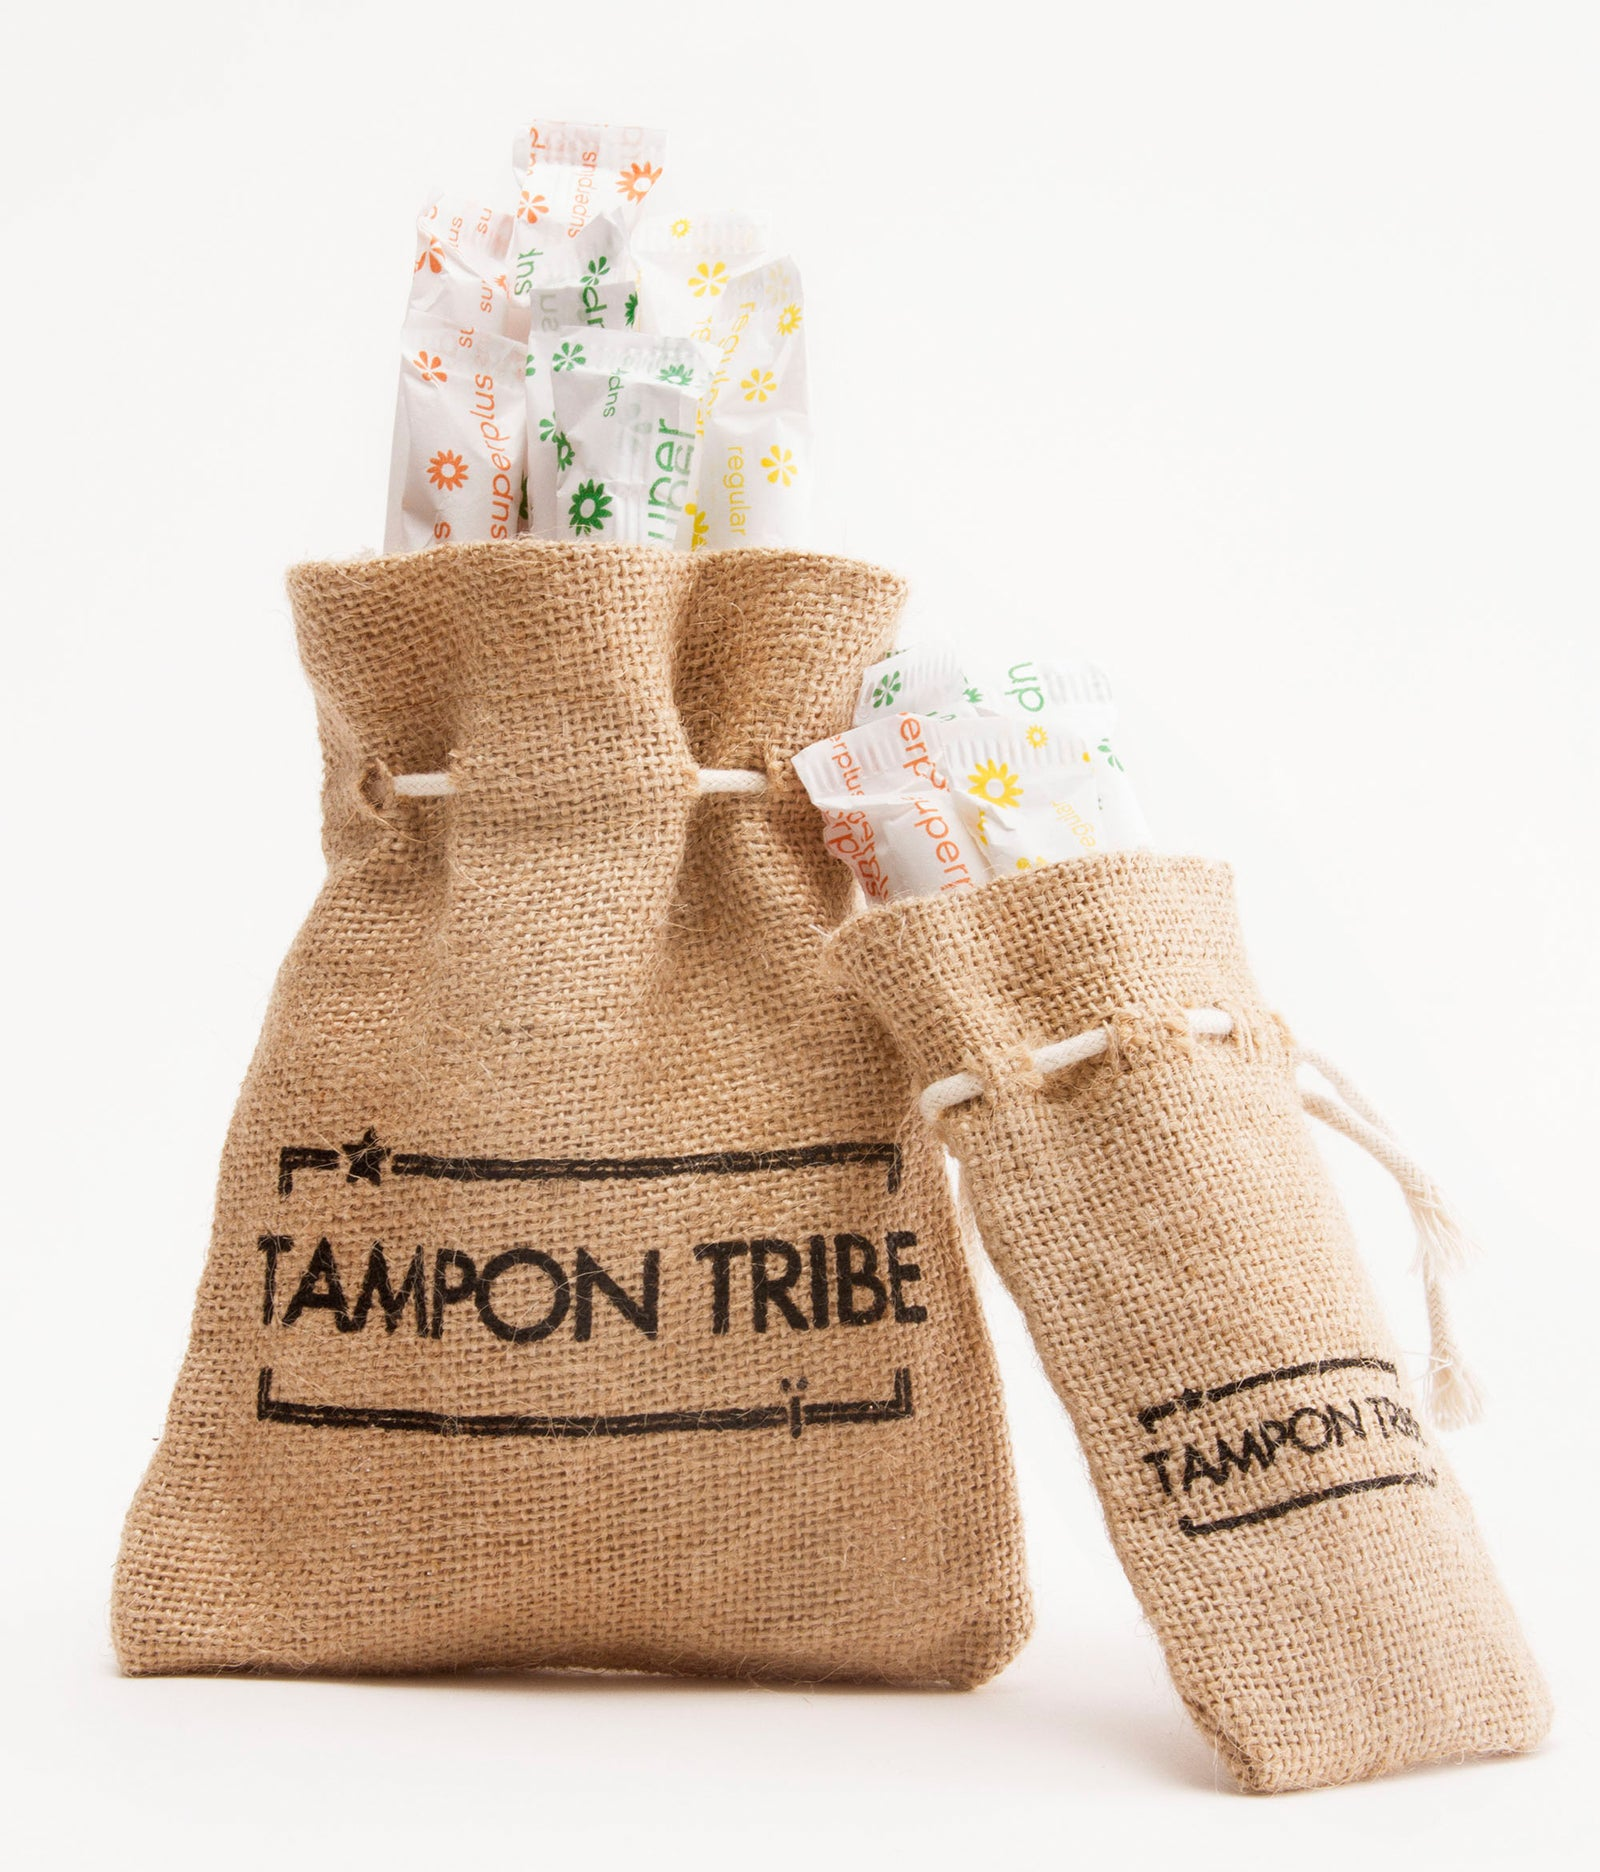 Buy Best Certified Plastic Free Organic Cotton Tampons & Pads Online